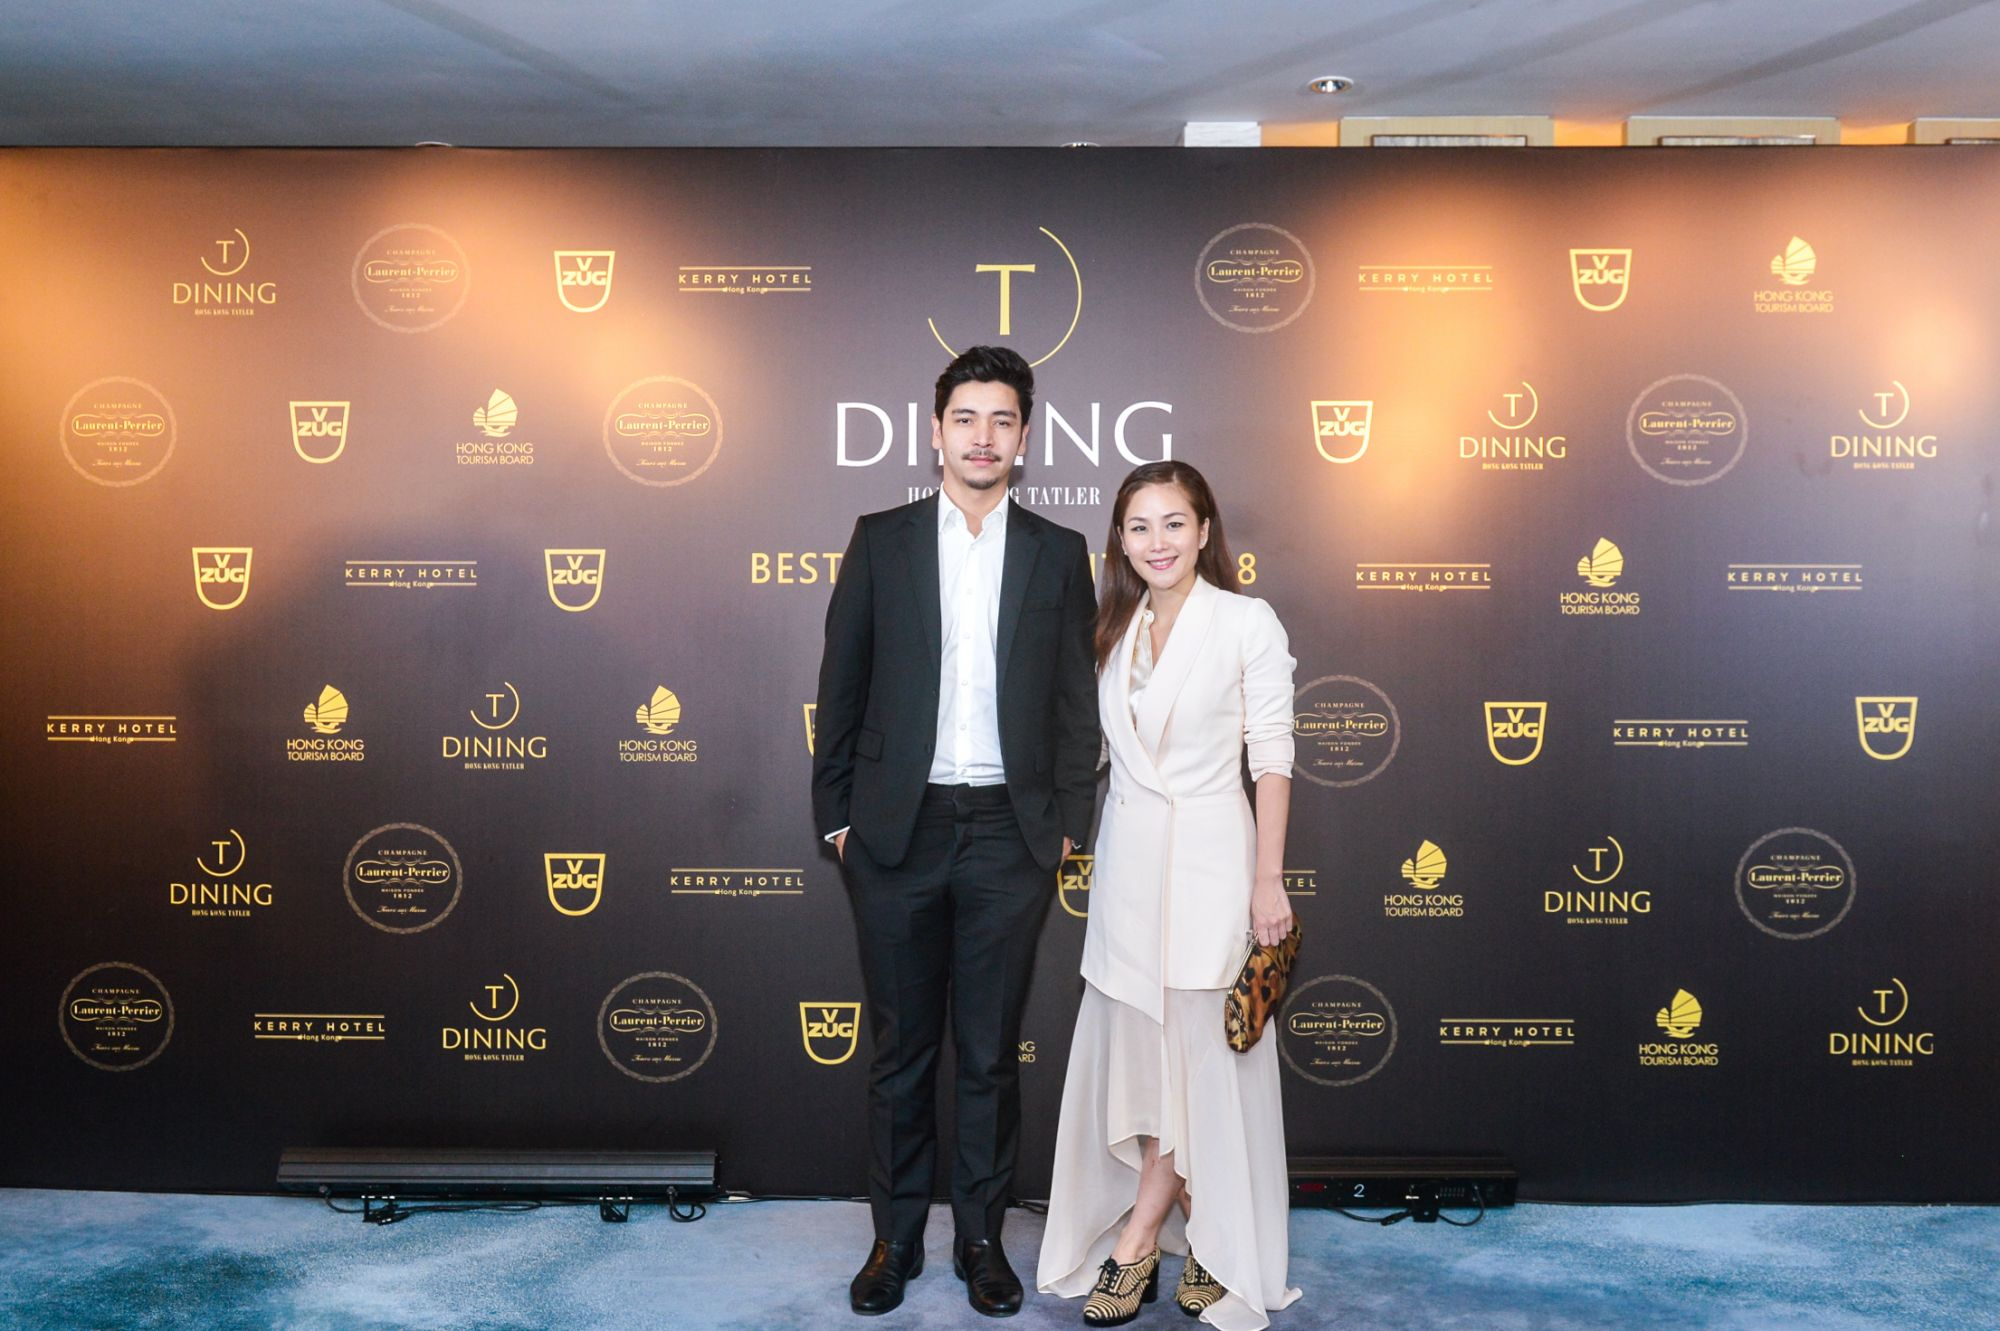 Robert Ho and Vicky Lau